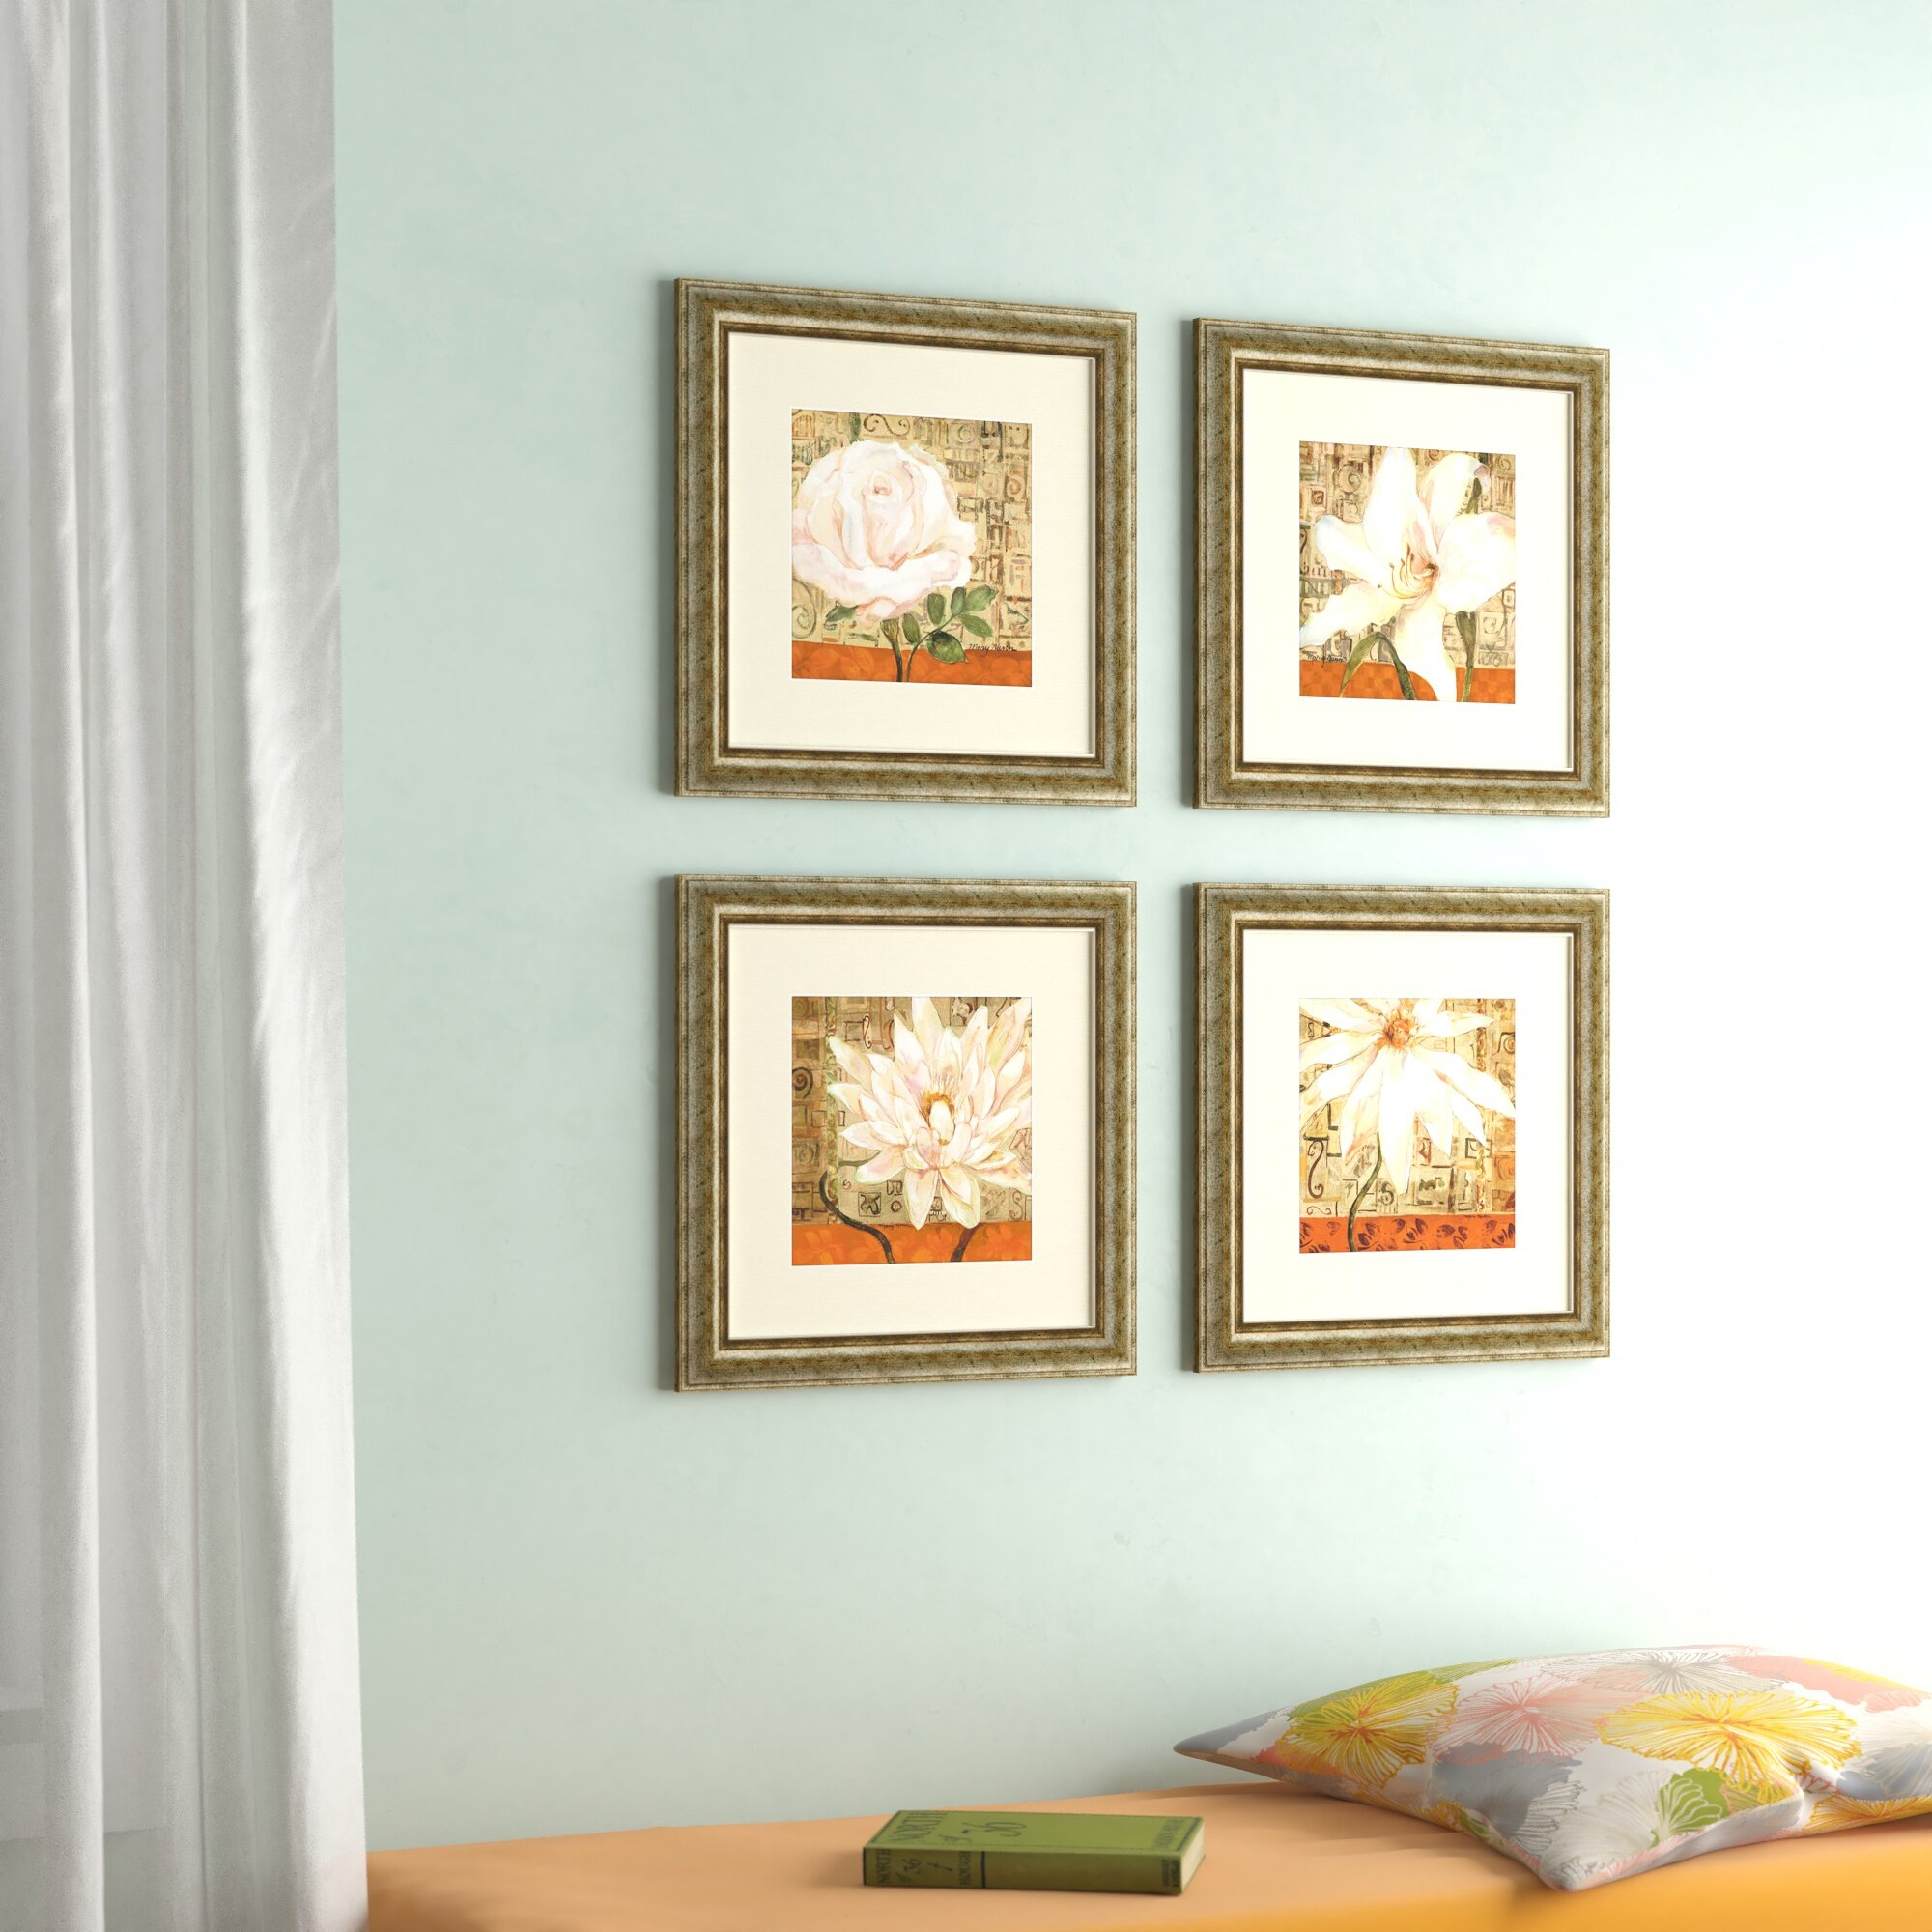 'opulence' 4 Piece Framed Graphic Art Set Regarding 4 Piece Wall Decor Sets By Charlton Home (View 4 of 30)